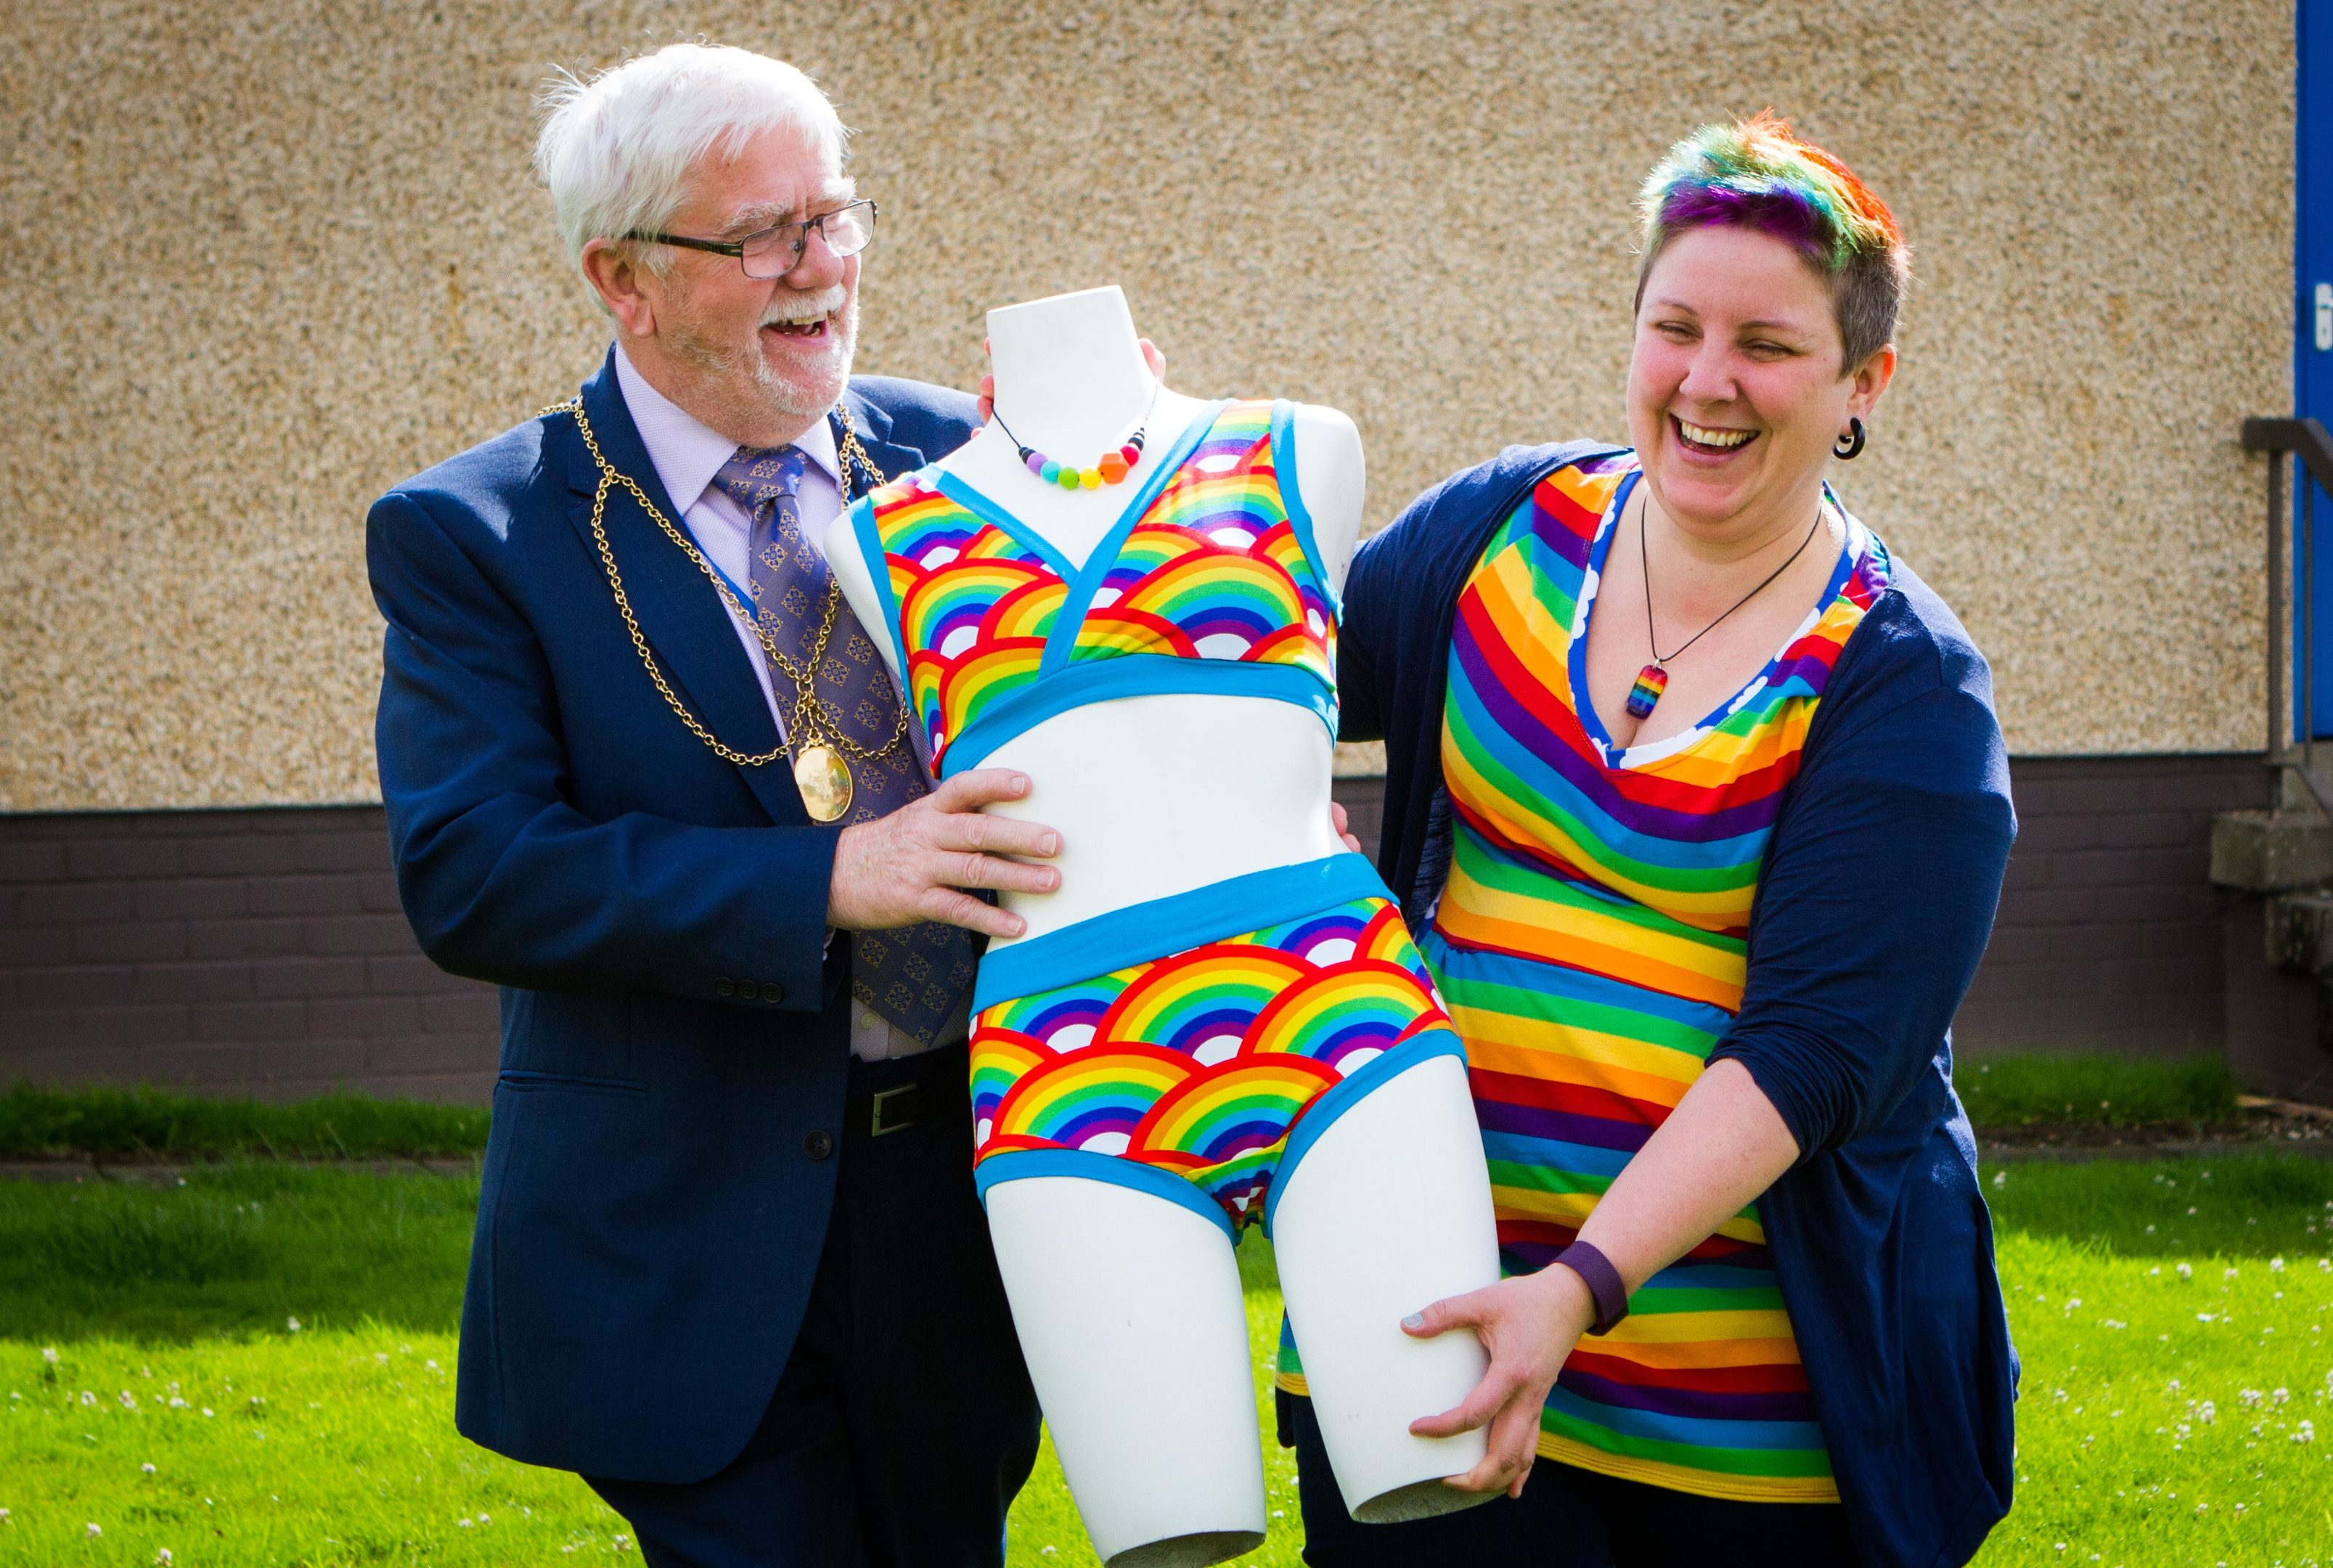 67311e5f04 Perth underwear business is breast fed for ideas - The Courier